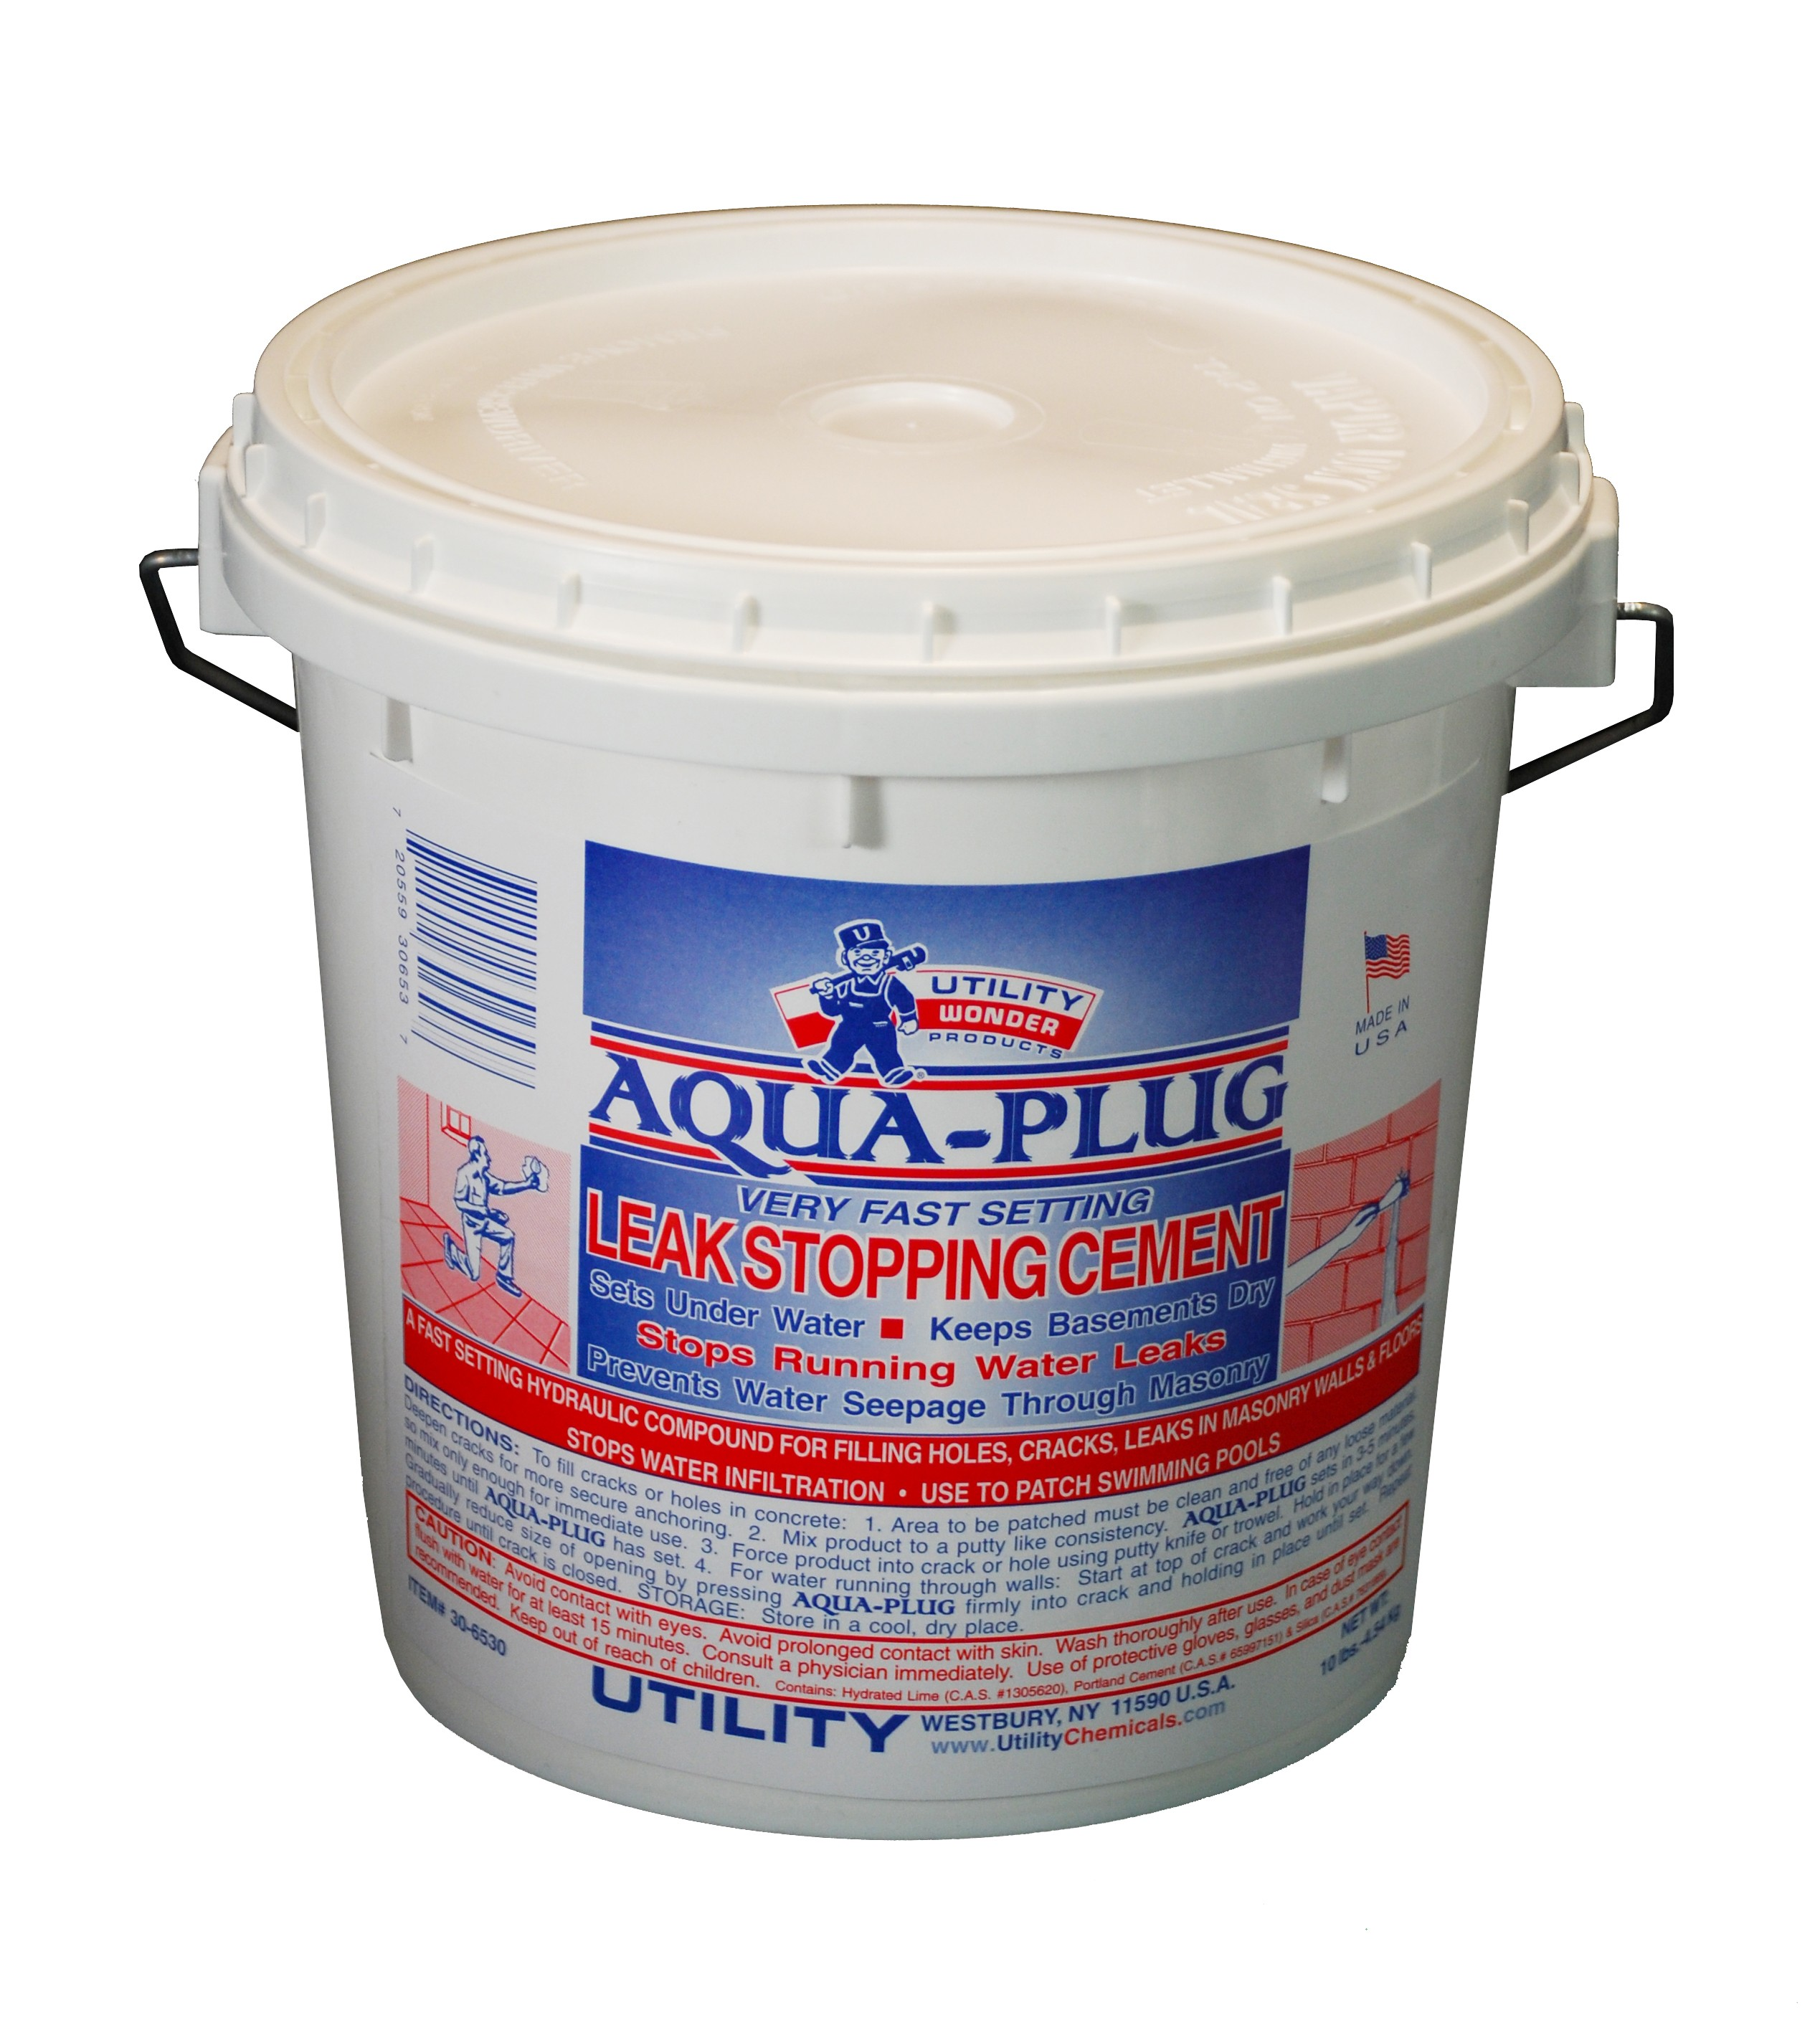 AQUA-PLUG LEAK STOPPING CEMENT